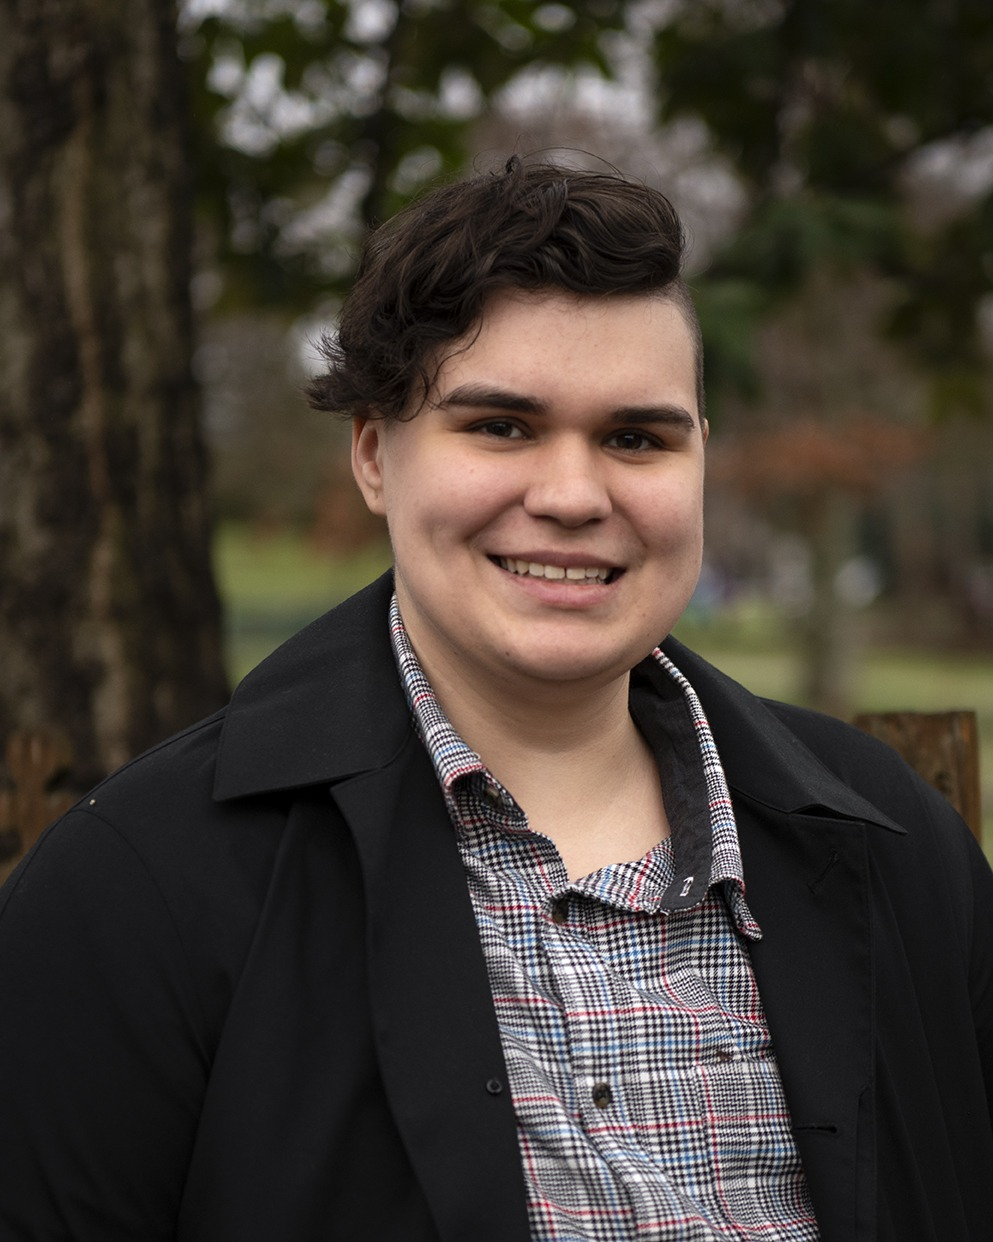 A person in a coat and a plaid shirt smiling in front of a park